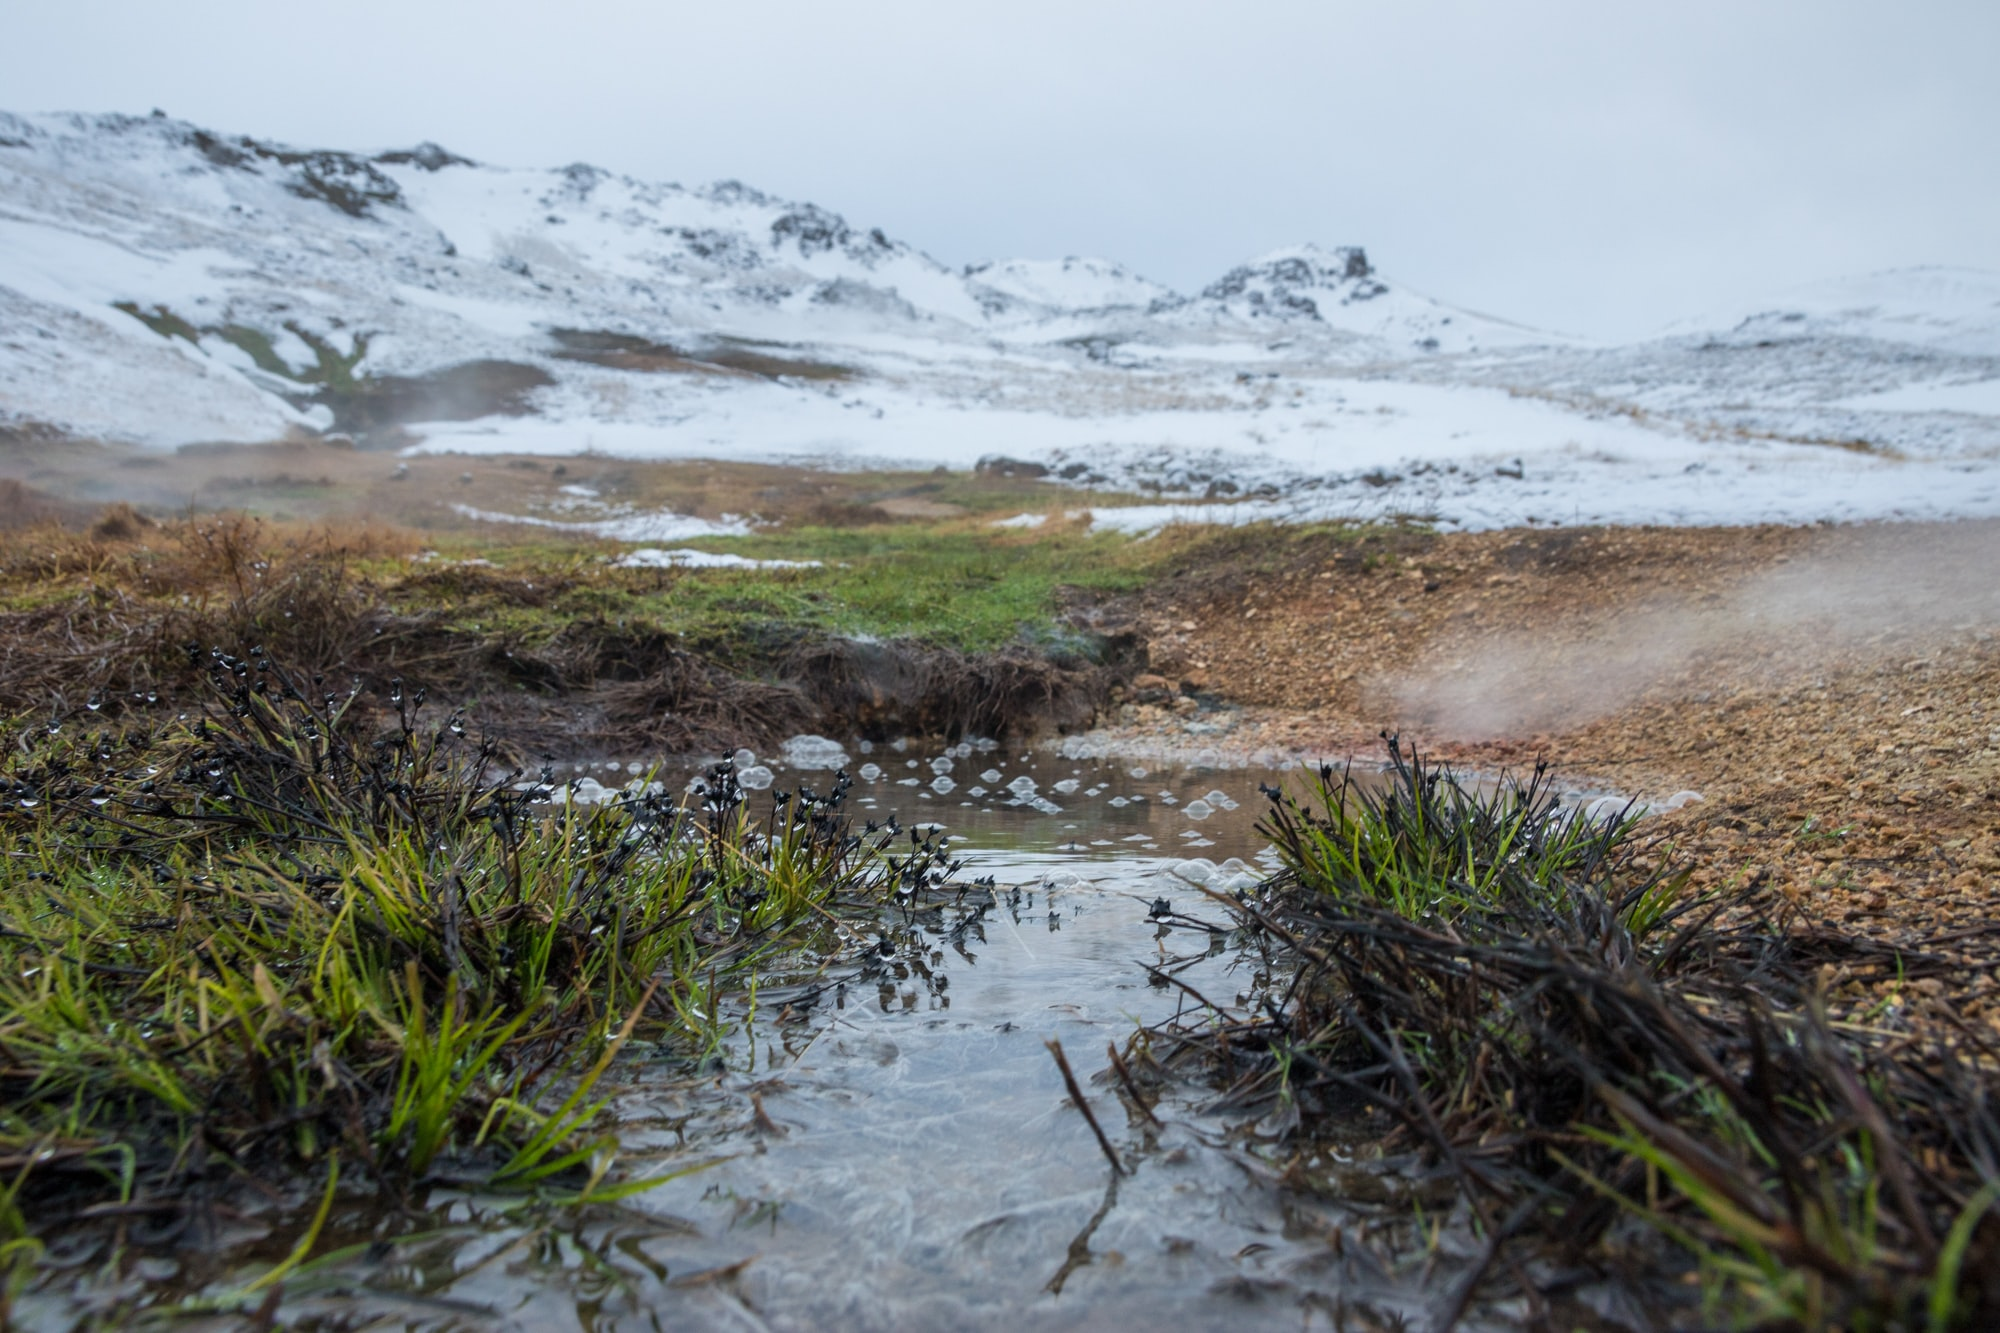 A stream of water runs through grass towards a mountain topped with snow in Reykjanesbær, Iceland